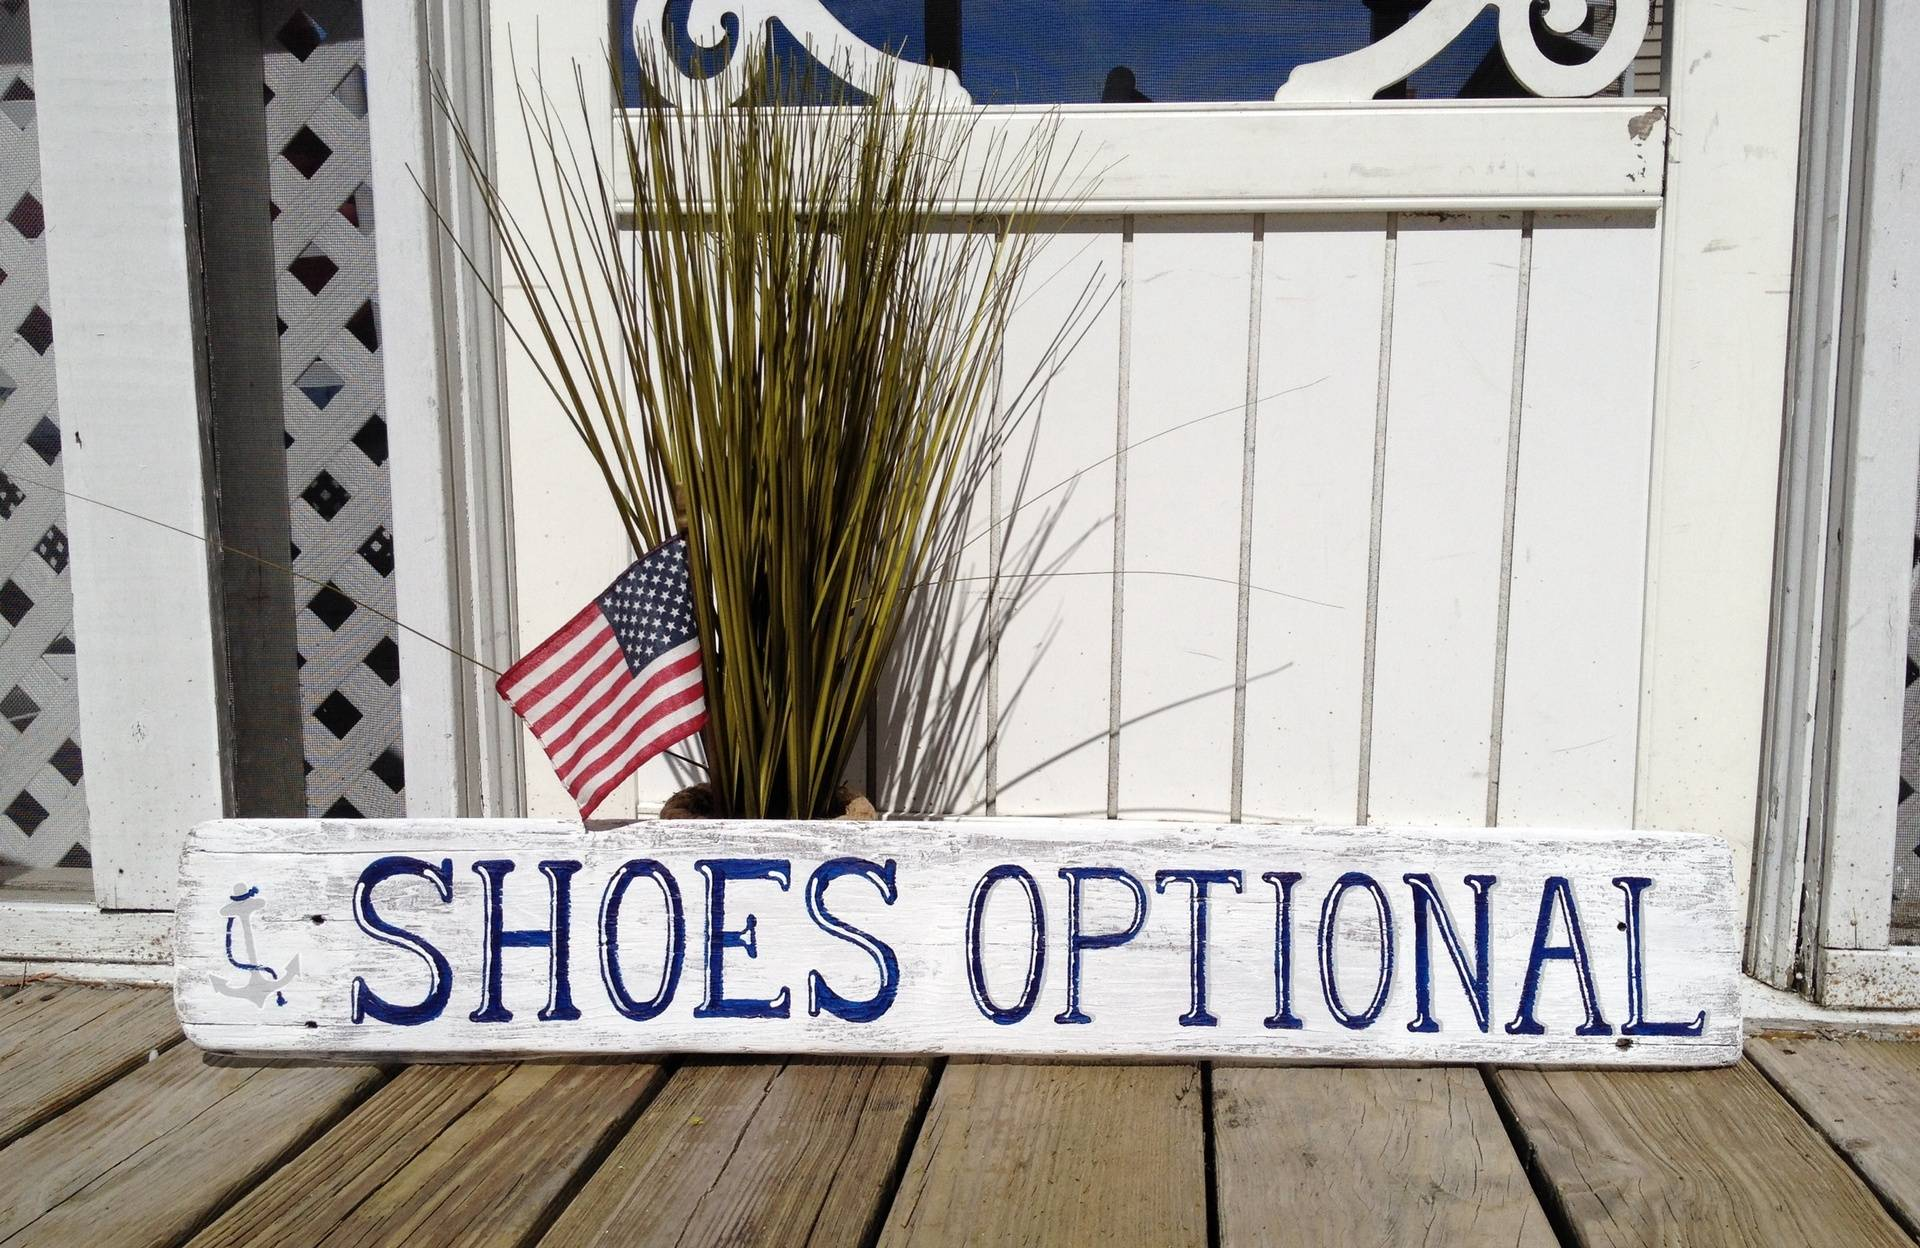 Shoes Optional sign